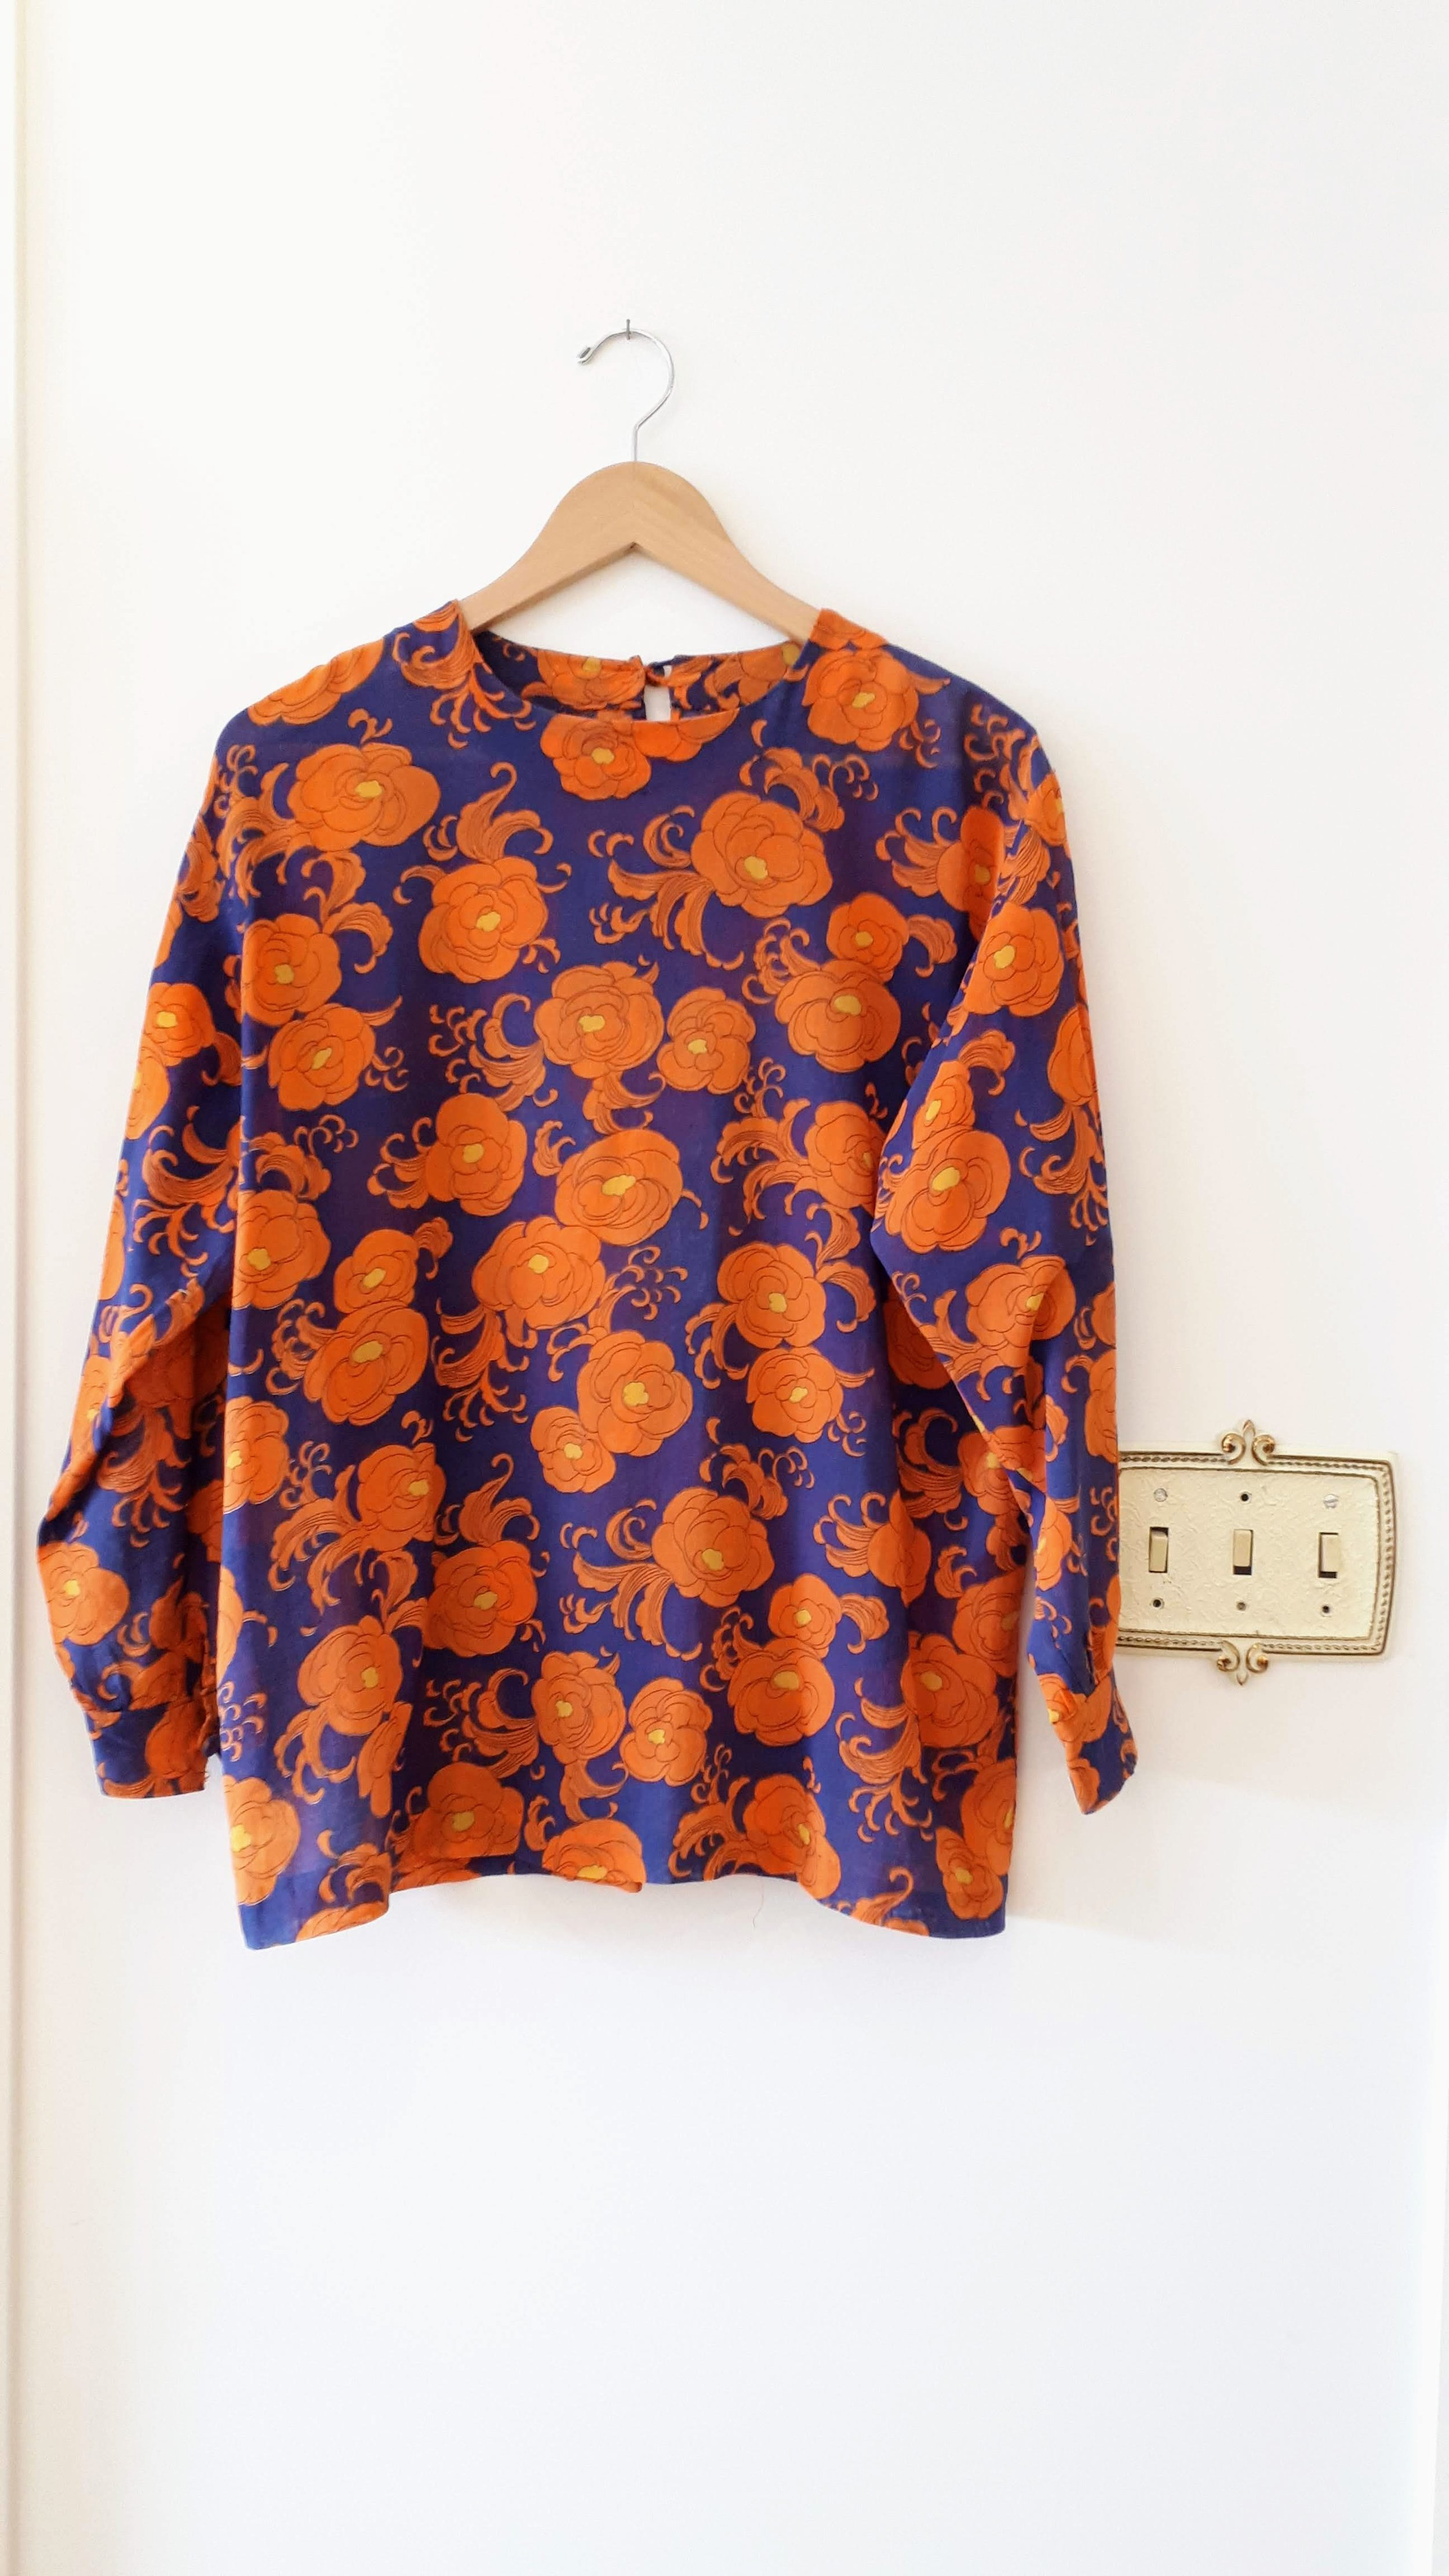 Blue and orange top; Size M, $26